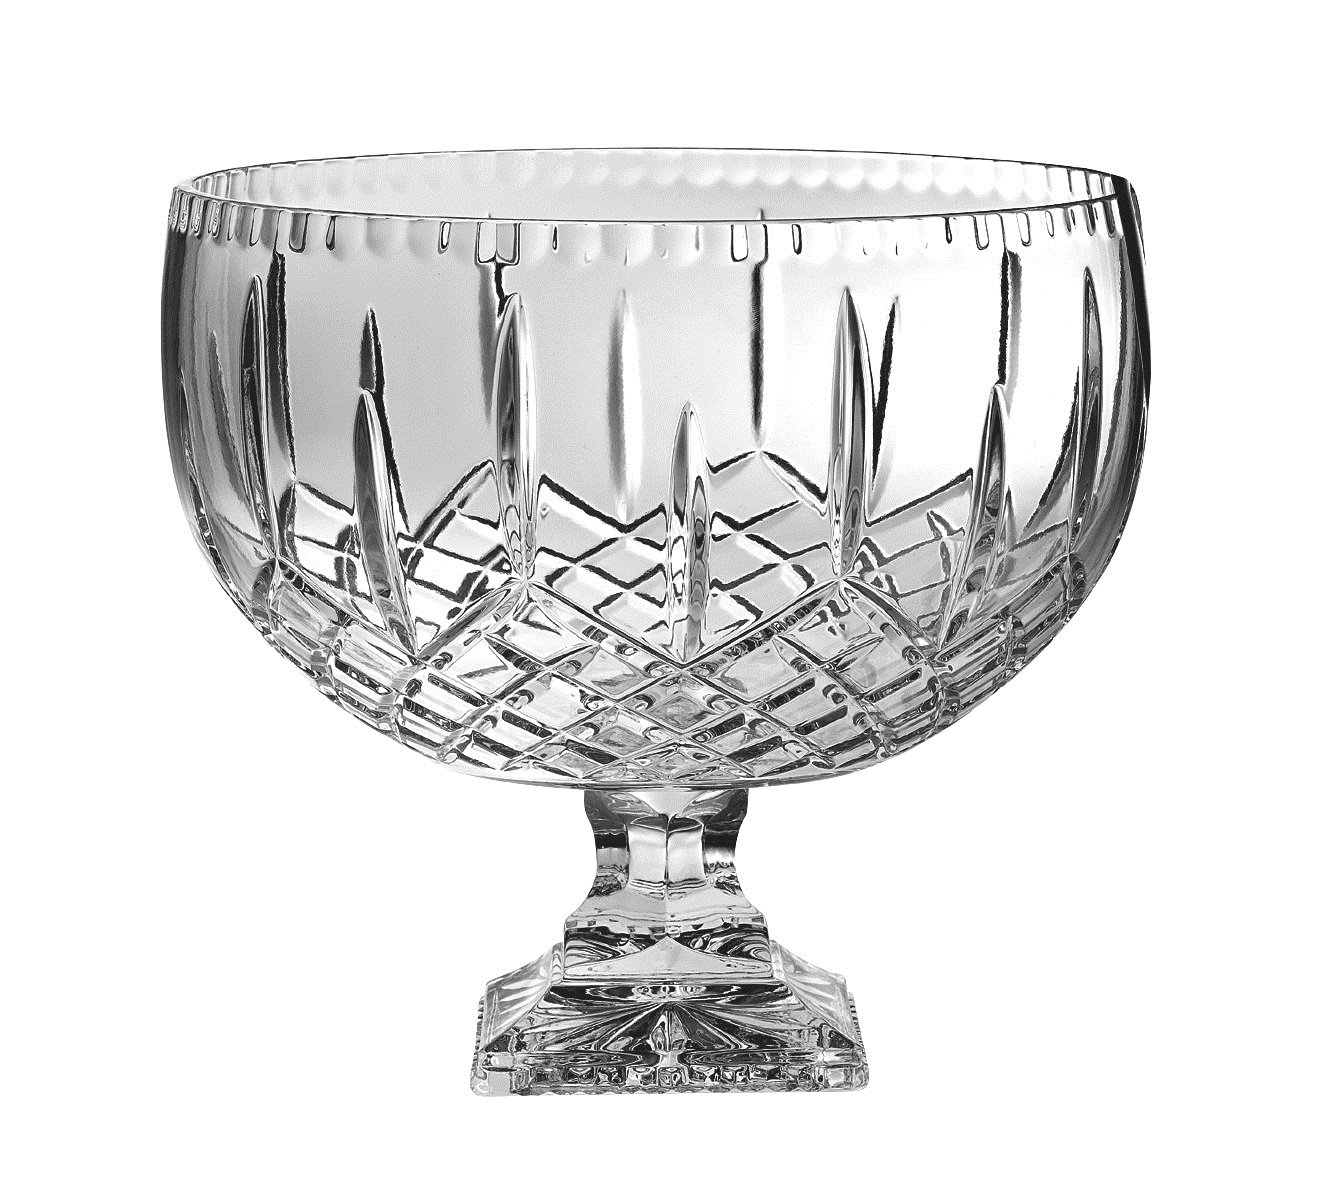 Barski - European Crystal - Handmade - Large Centerpiece Footed Bowl -Punch Bowl - 12'' D - (12'' Diameter ) - 270 oz - 8.5 quarts - Made in Europe by Barski